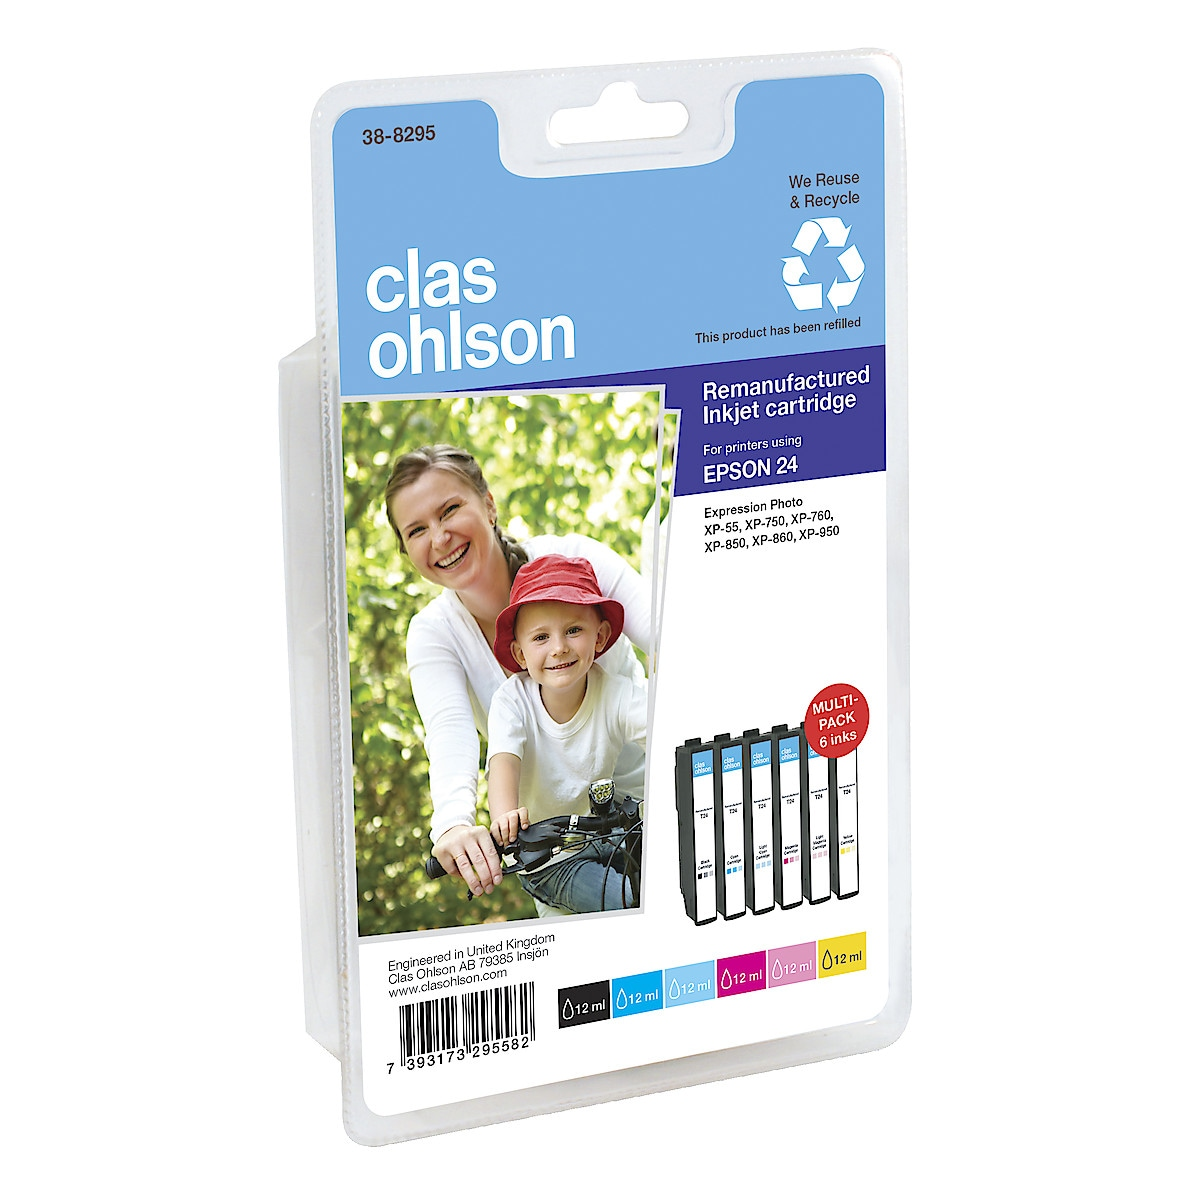 Clas Ohlson Epson 24 Ink Cartridge